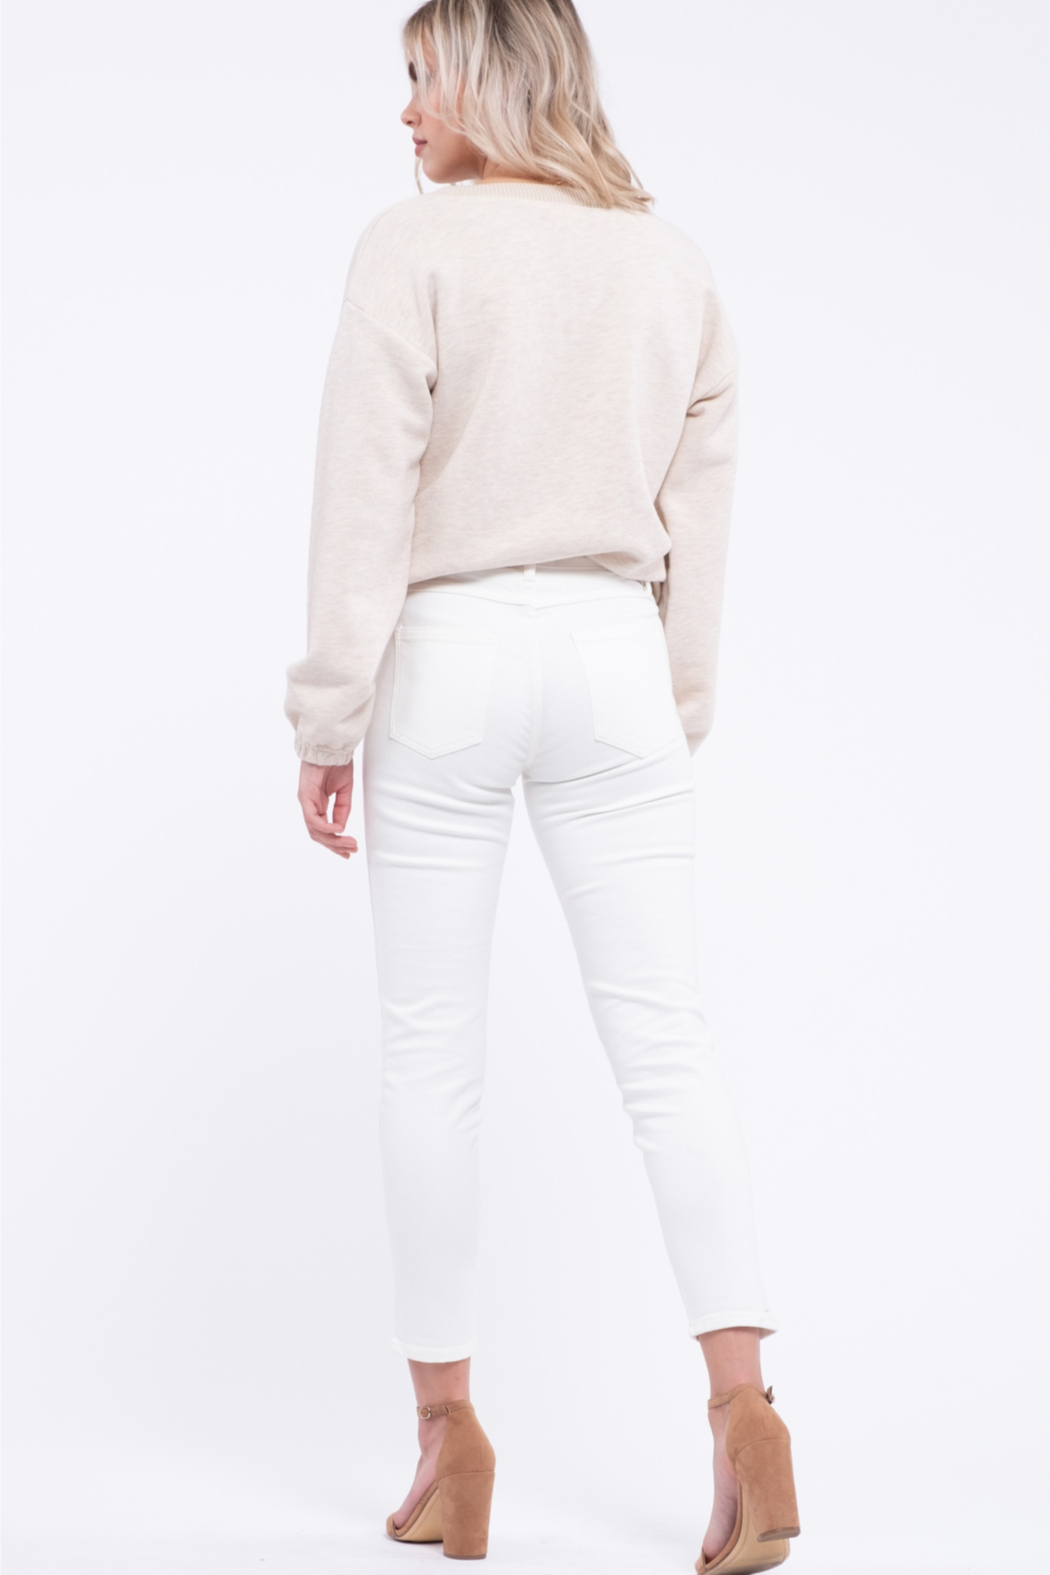 EVIDNT Off-White Cotton Low Rise Twisted Side Seam Skinny Jeans - Back Cropped Image